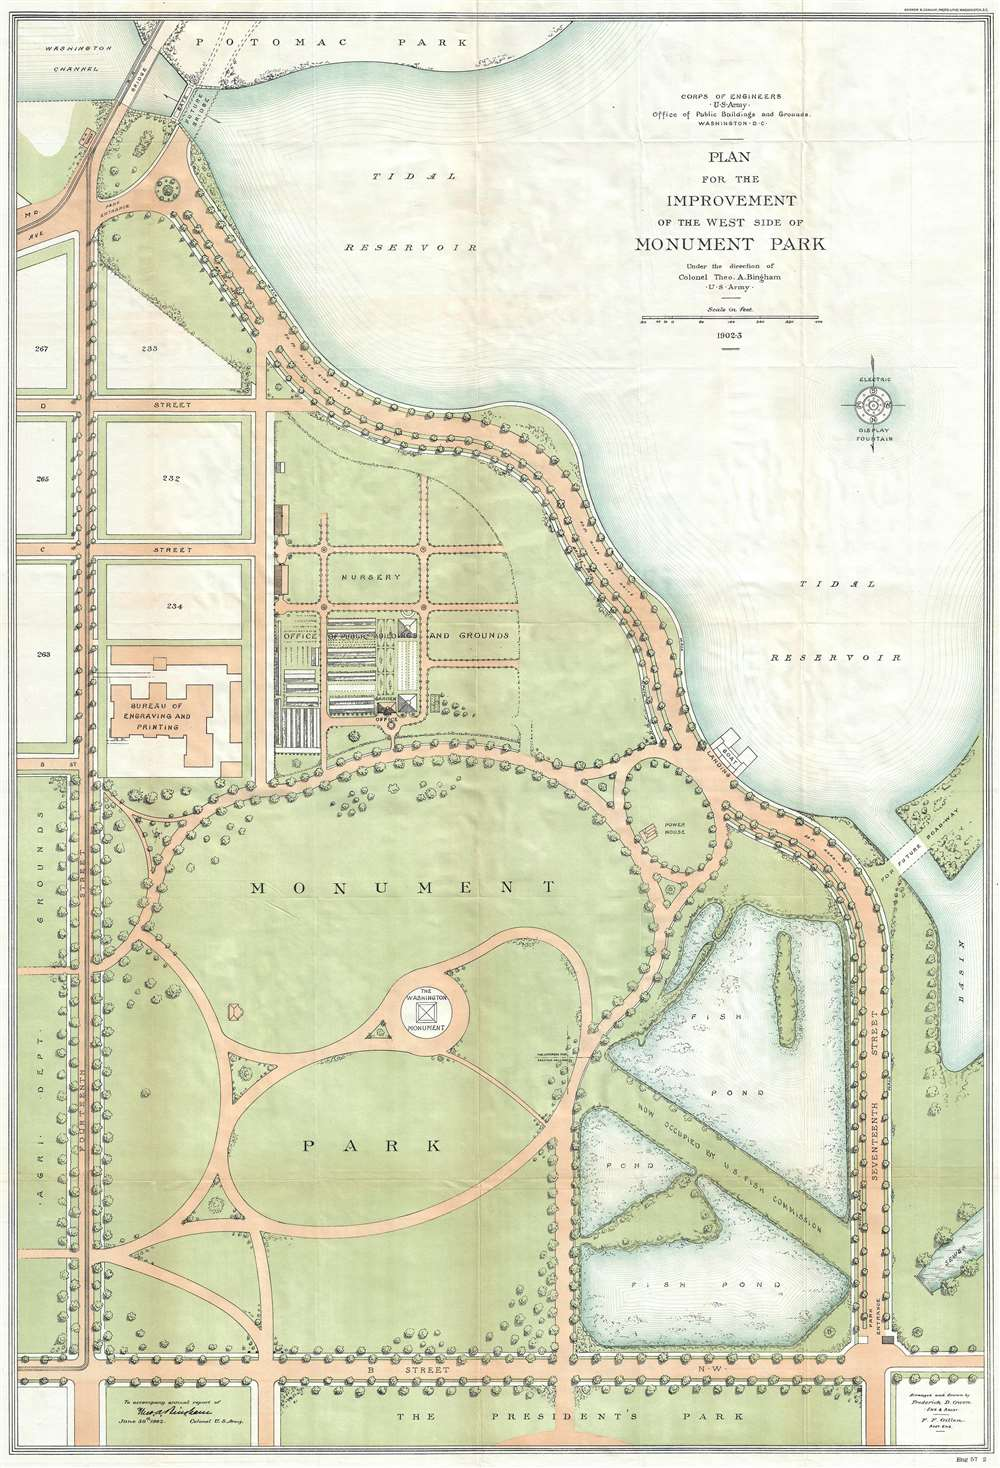 1904 U.S. Army Map of Monument Park, National Mall, Washington D.C.